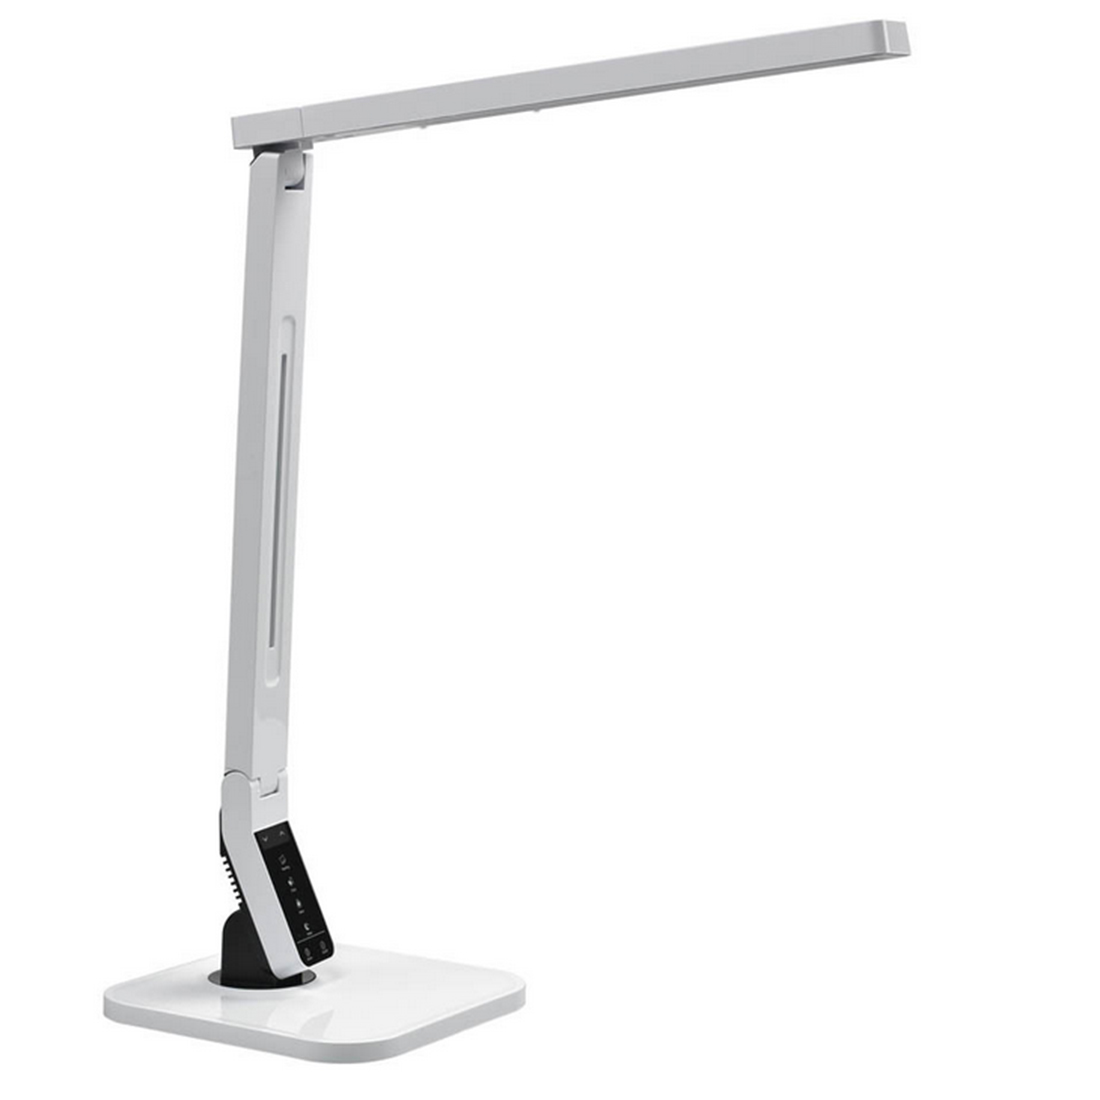 Iguardor Multi-function Eye Protection Table Lamp USB Charging Reading Working 4 Color Temperatures Control Timing Light US Plug luminat eye care led usb lamp clip on light screw clamp touch sensitive control function perfect reading lamp reading light